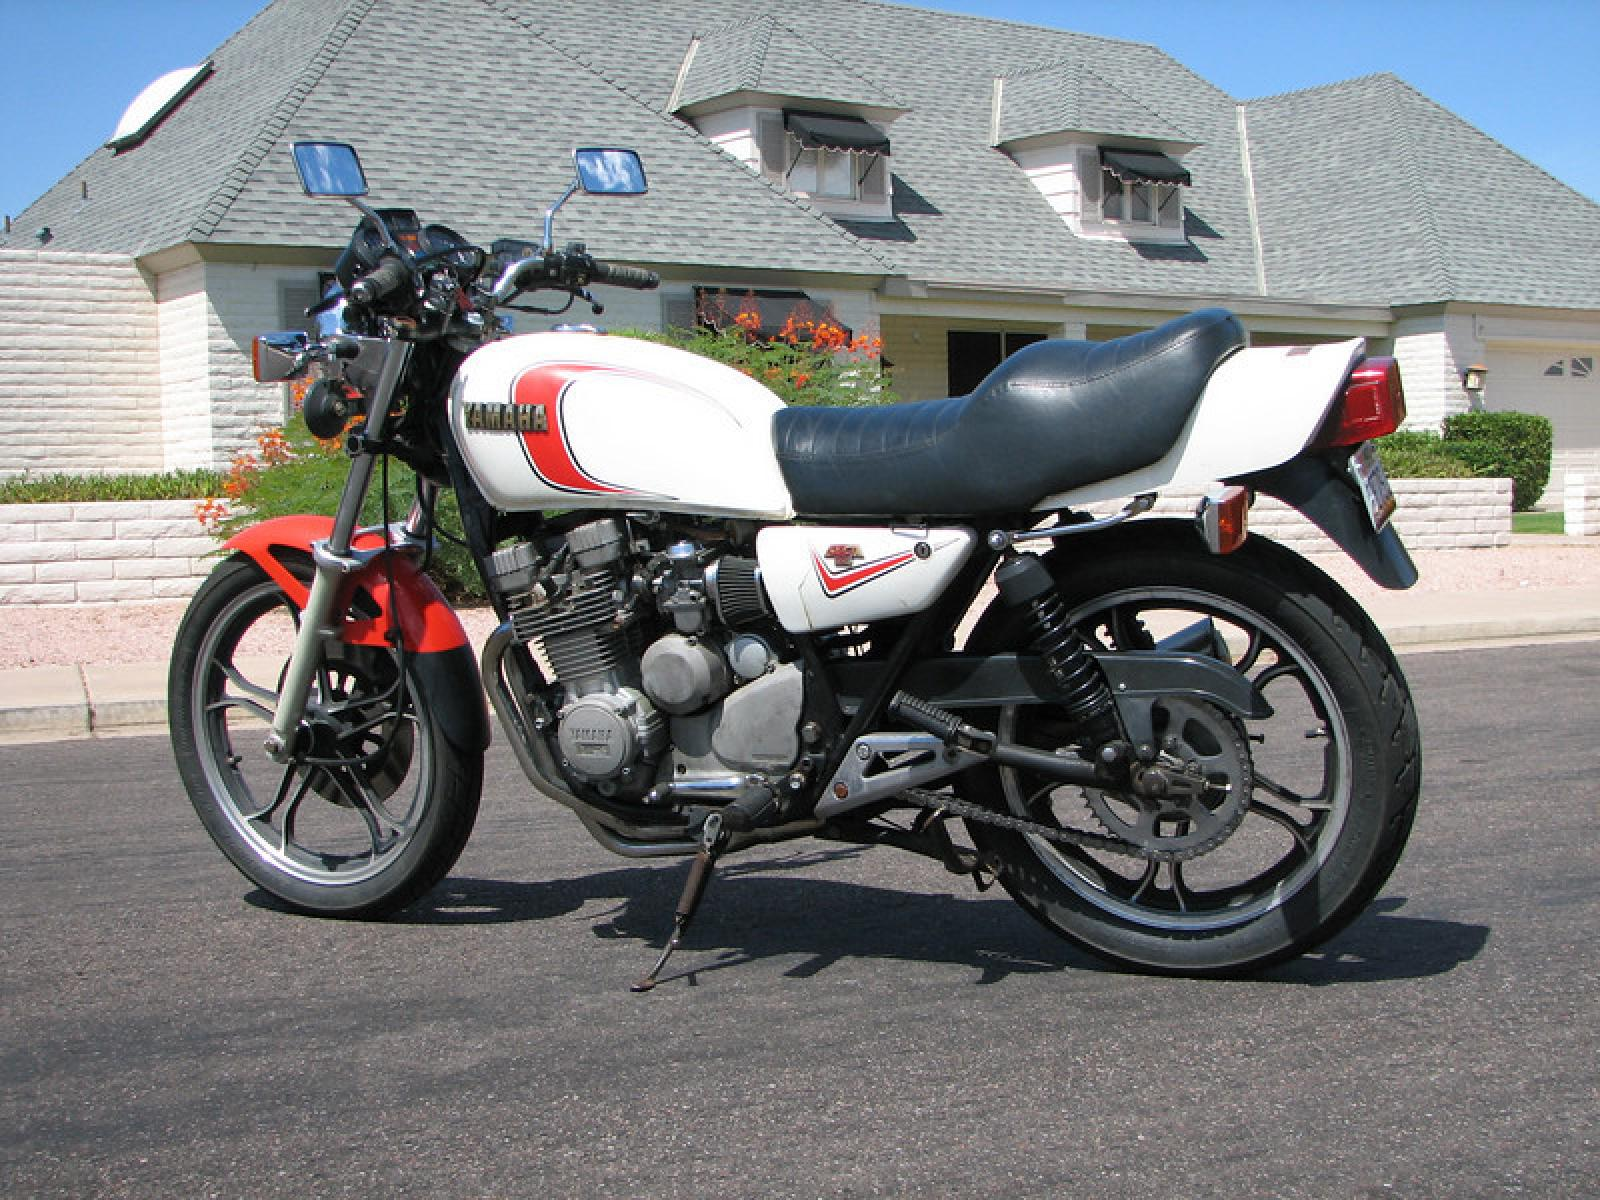 1981 Yamaha Xj550 Maxim Wiring Diagram 1982 Carbs Xj Fancy Seca Component Electrical Colorful